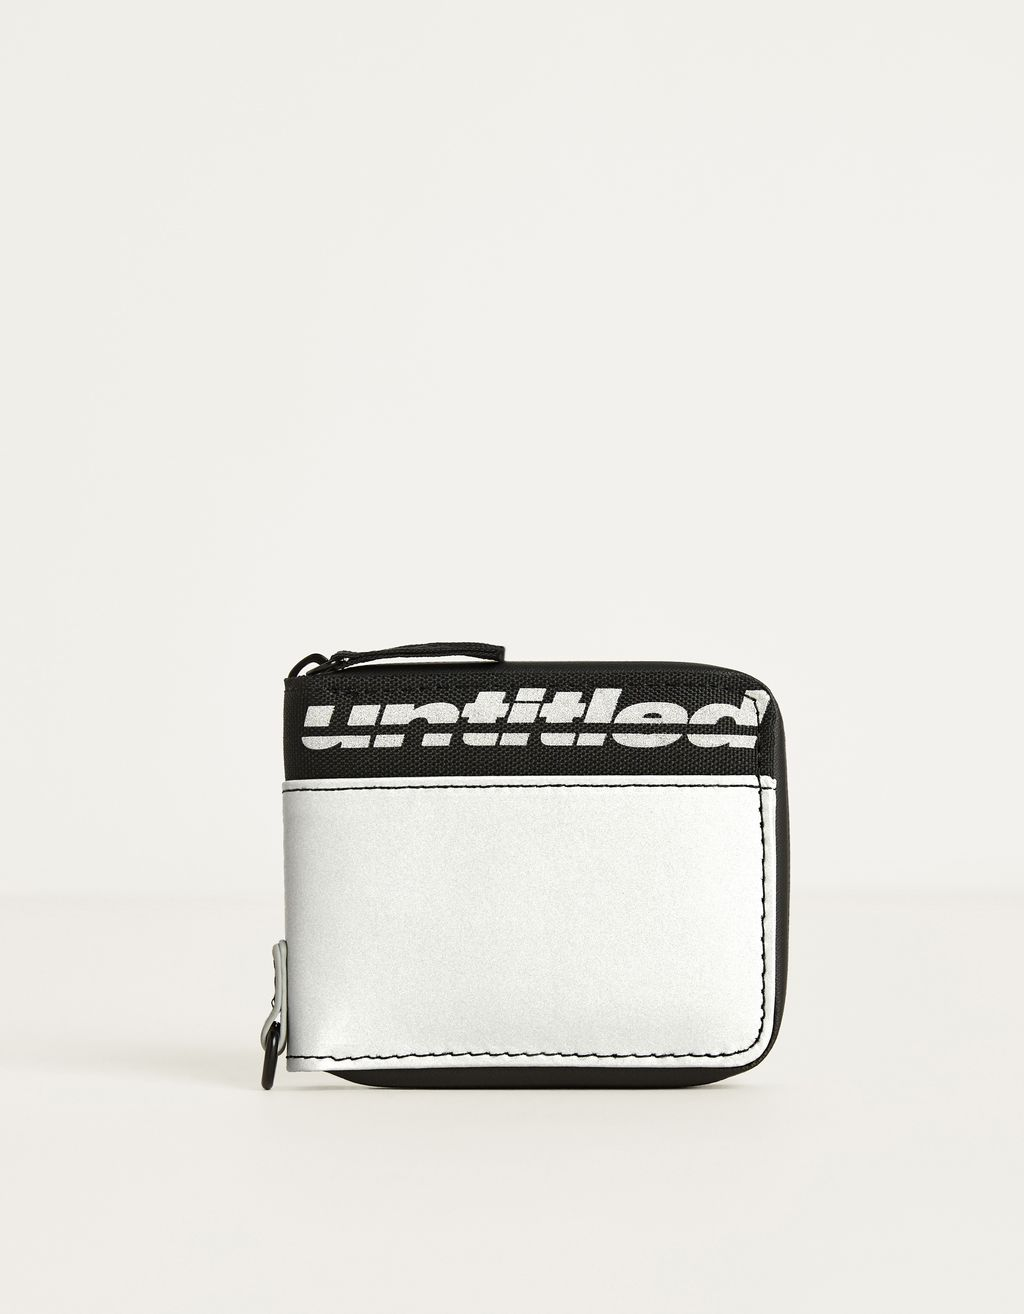 Reflective coin purse